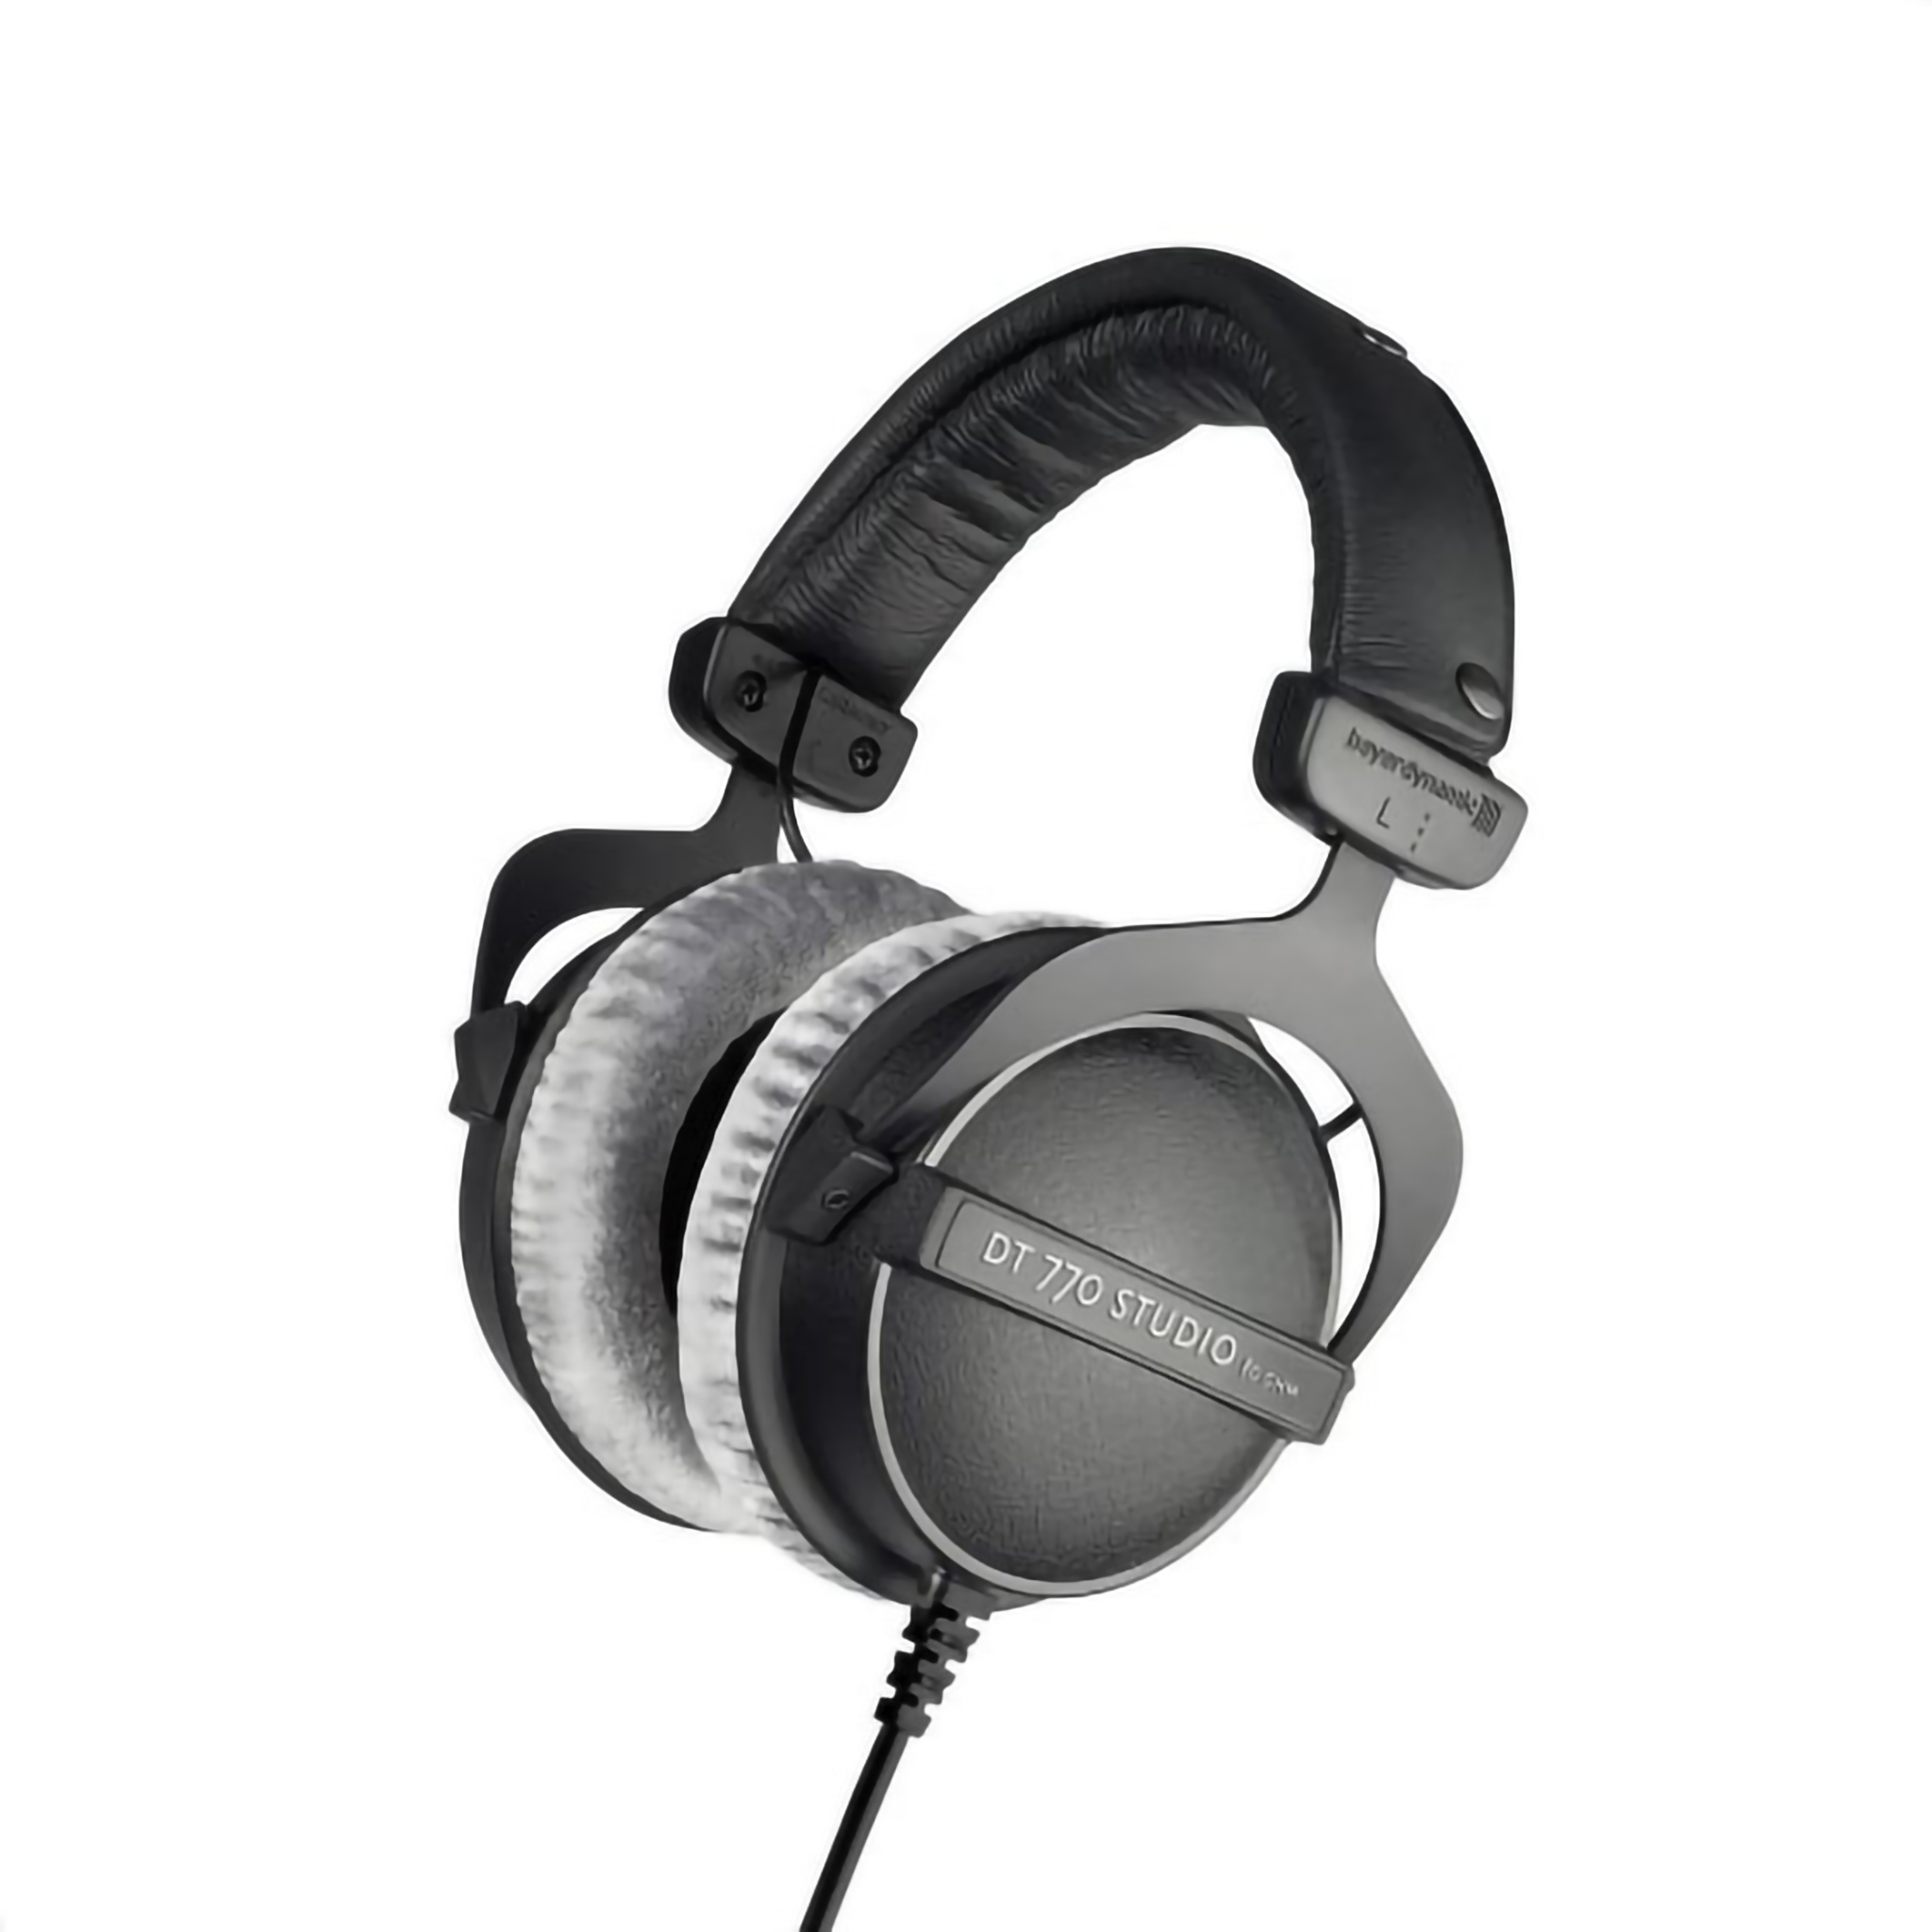 DT770 Studio headphones